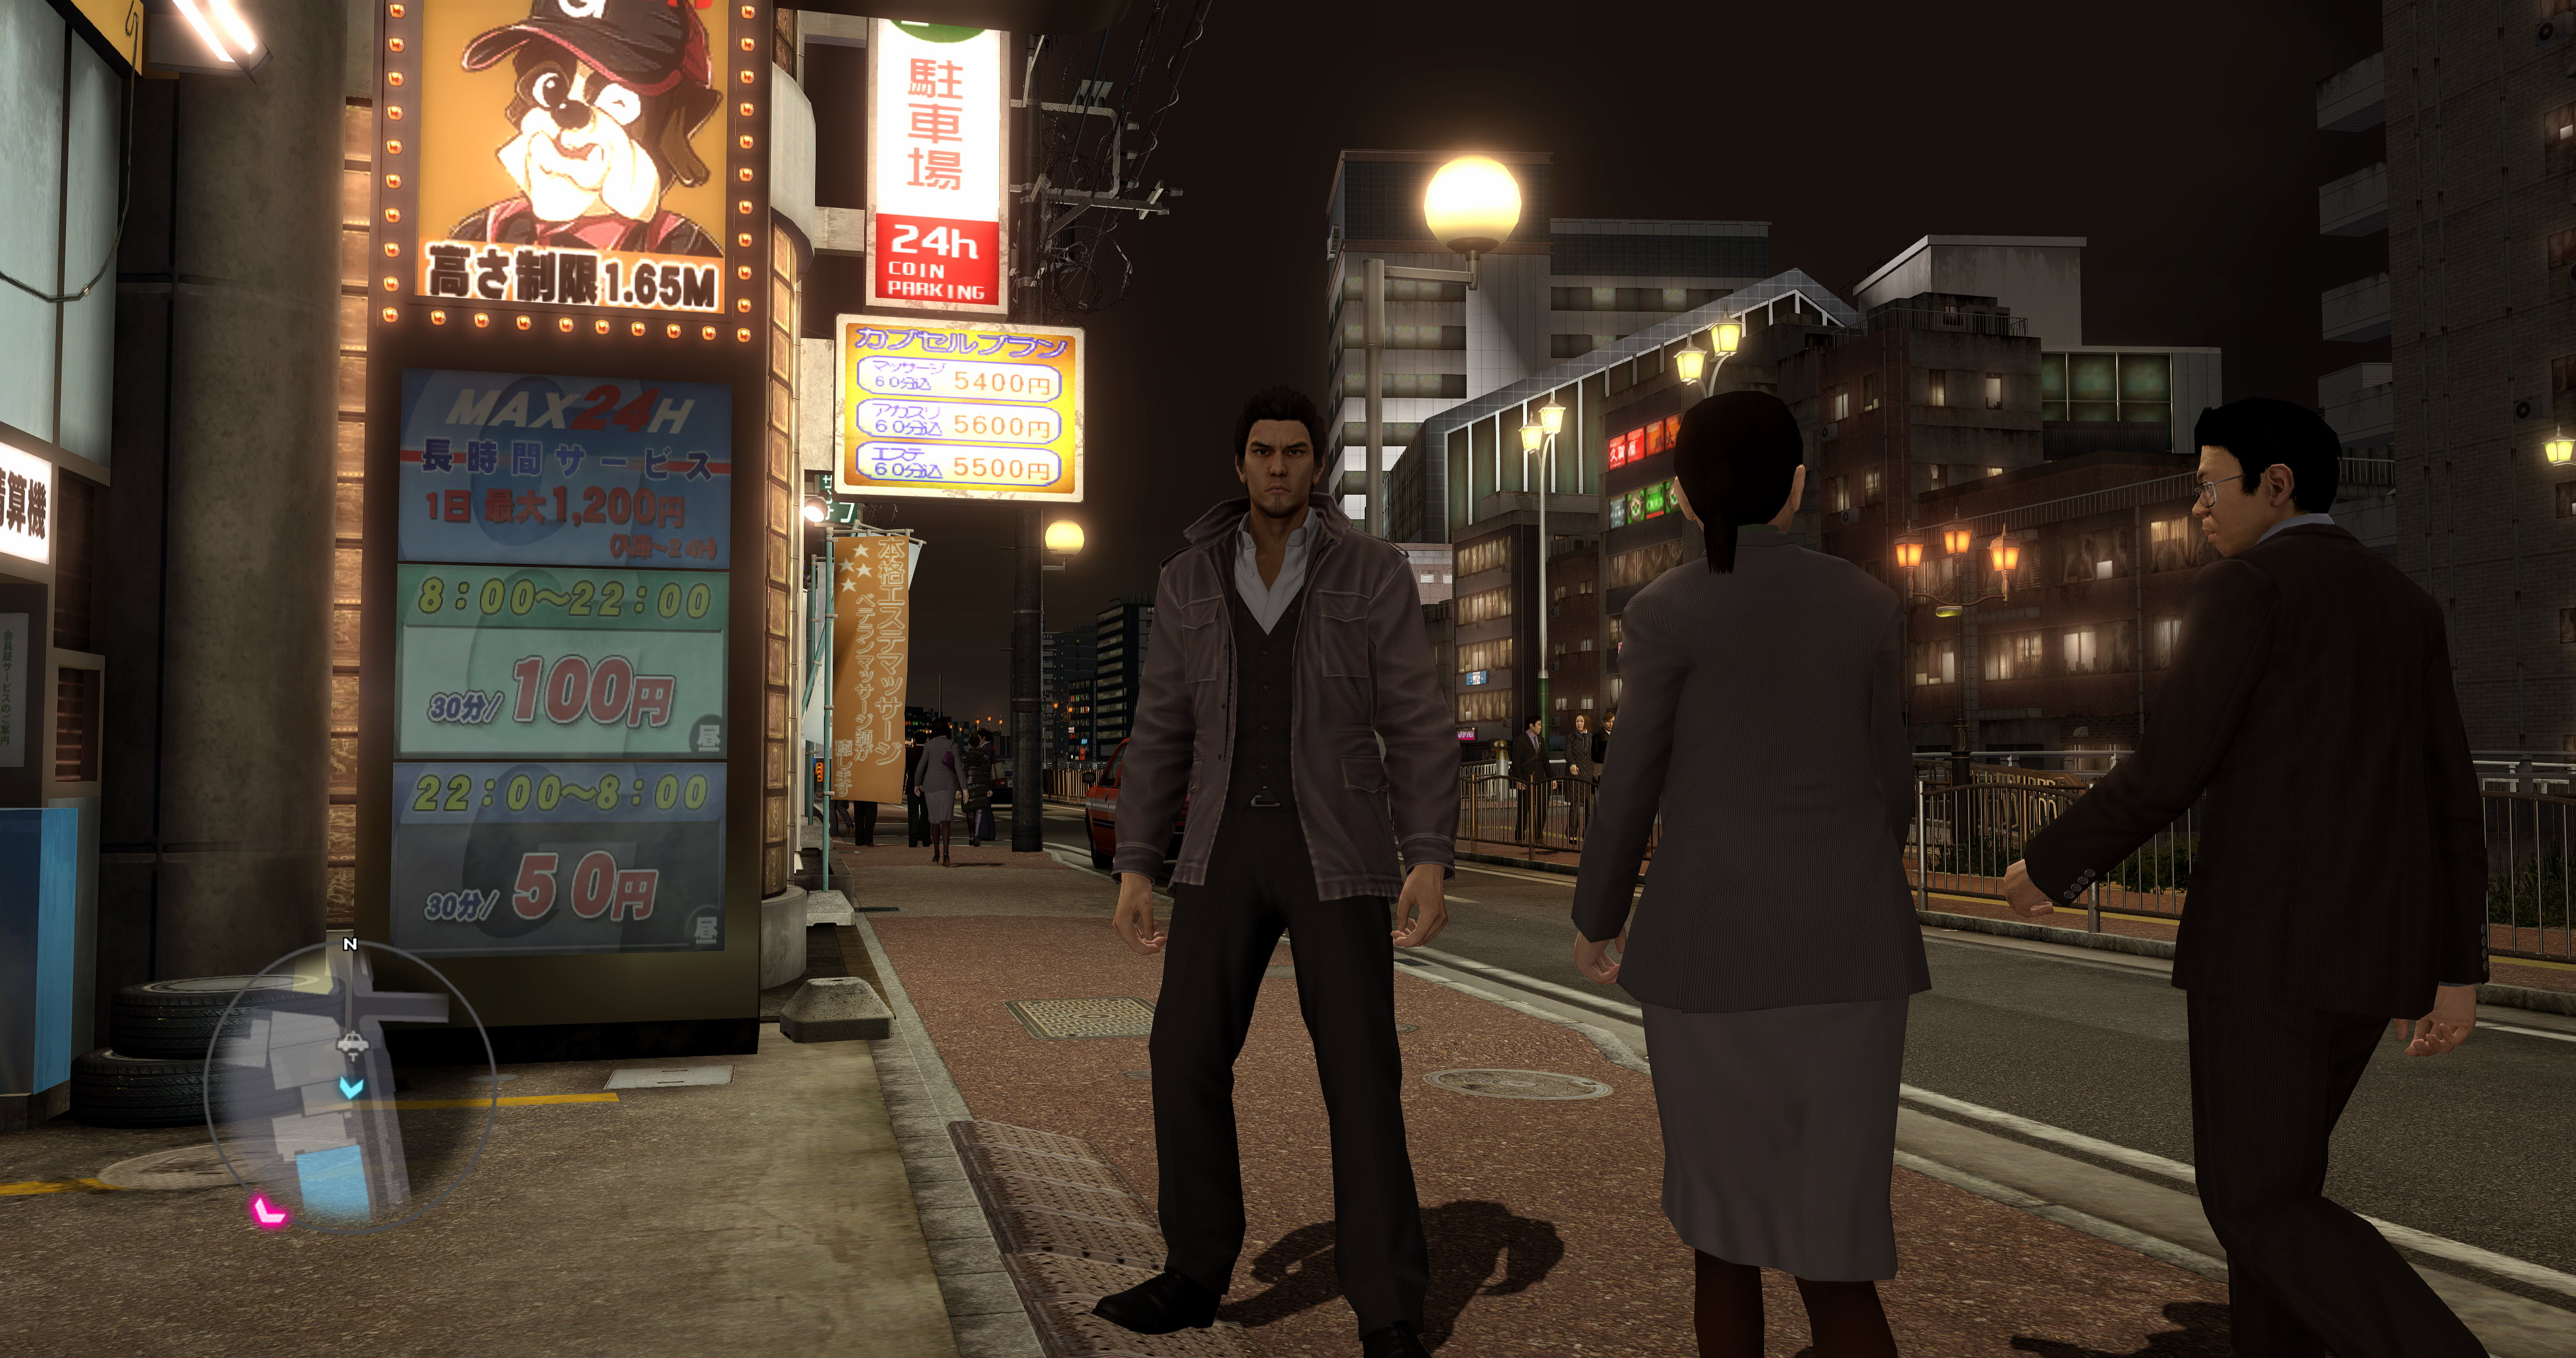 The street views in Yakuza 5 do see some benefit from the increased resolution available in the PC port.